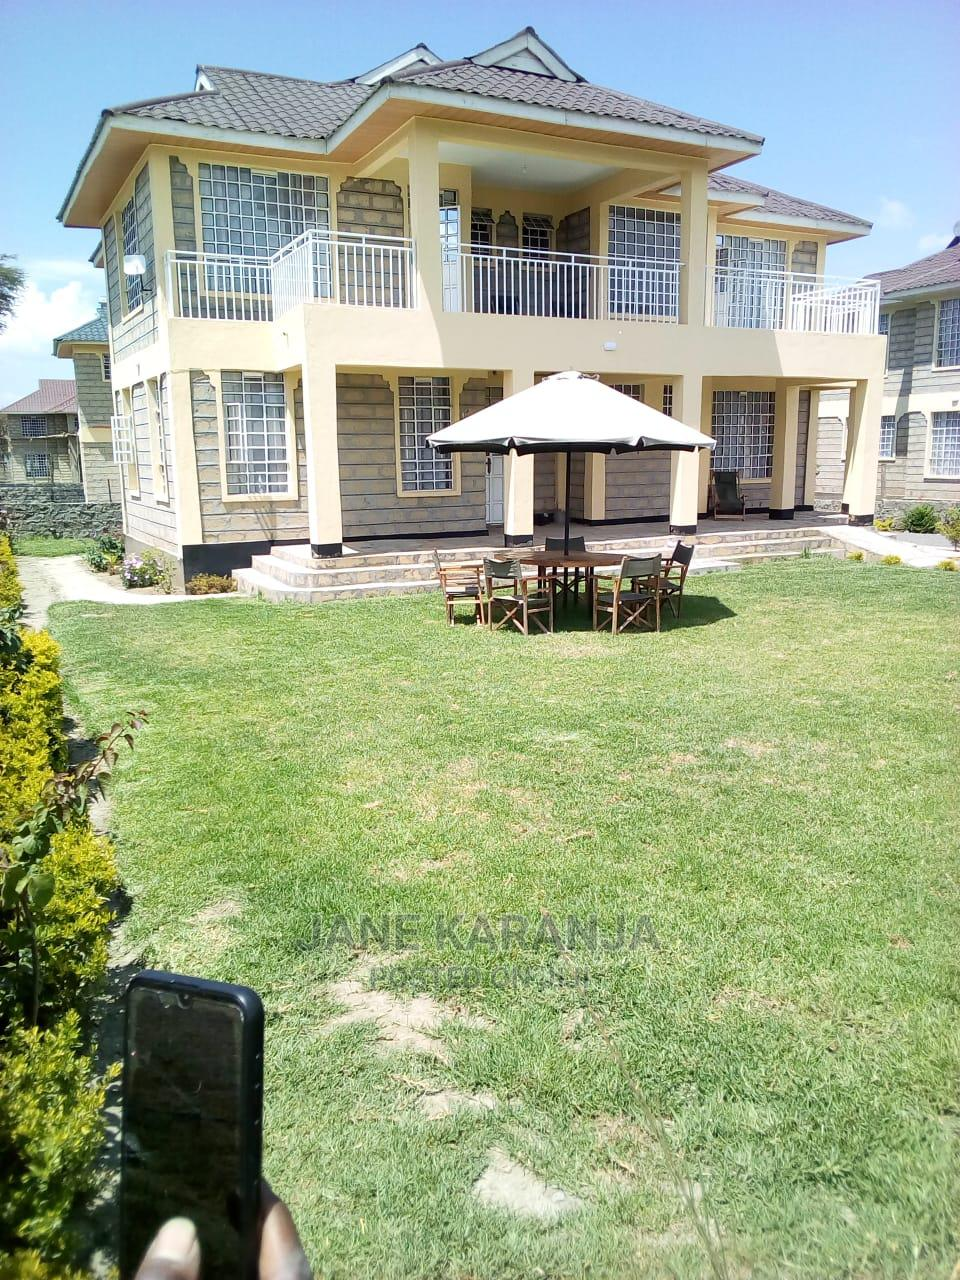 Archive: Furnished 4bdrm Farm House in Moi South Lake, HellsGate for Rent